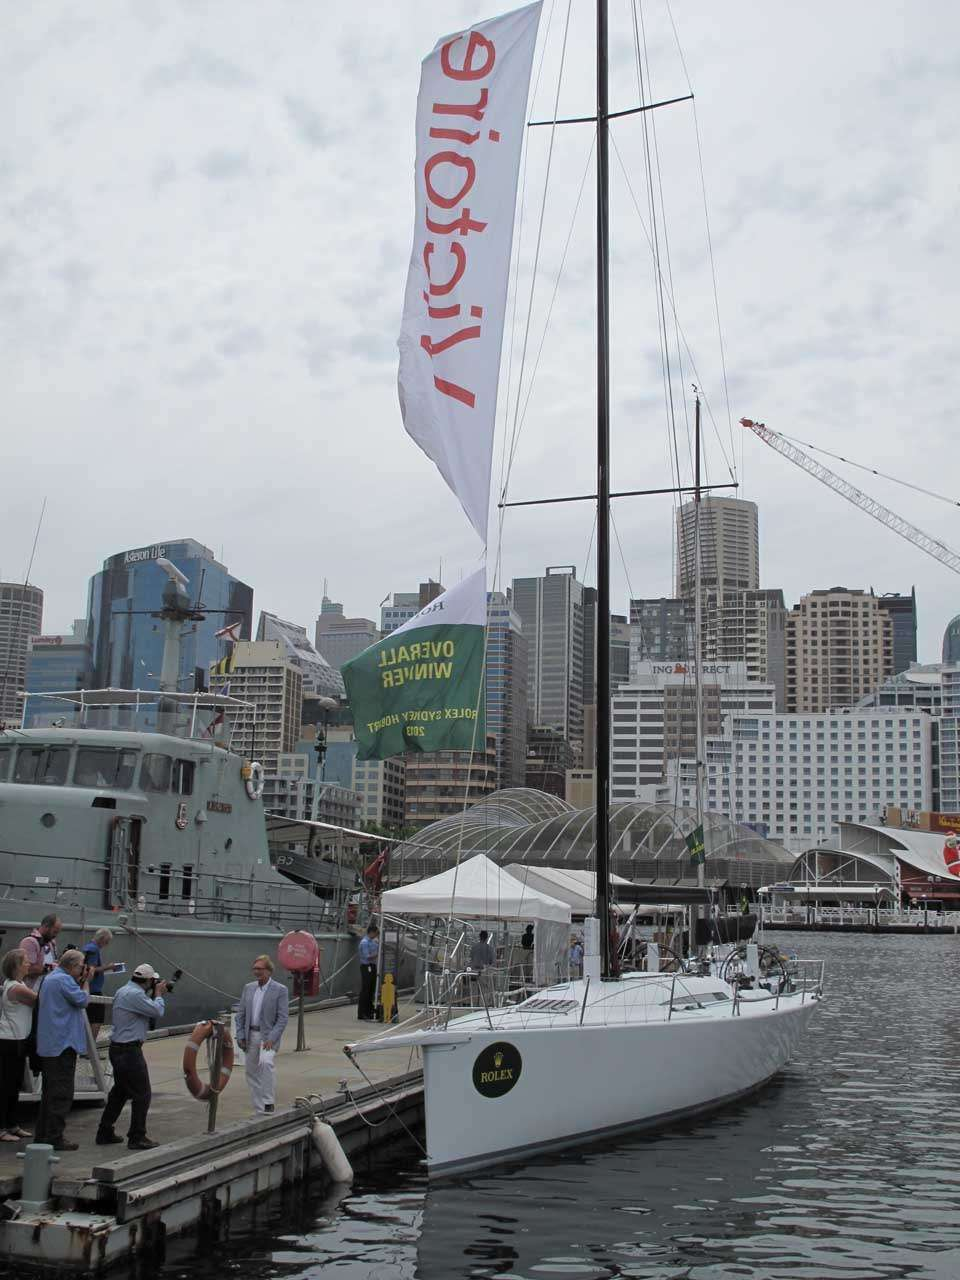 2013 overall winner Victoire, with its skipper Darryl Hodgkinson to the left